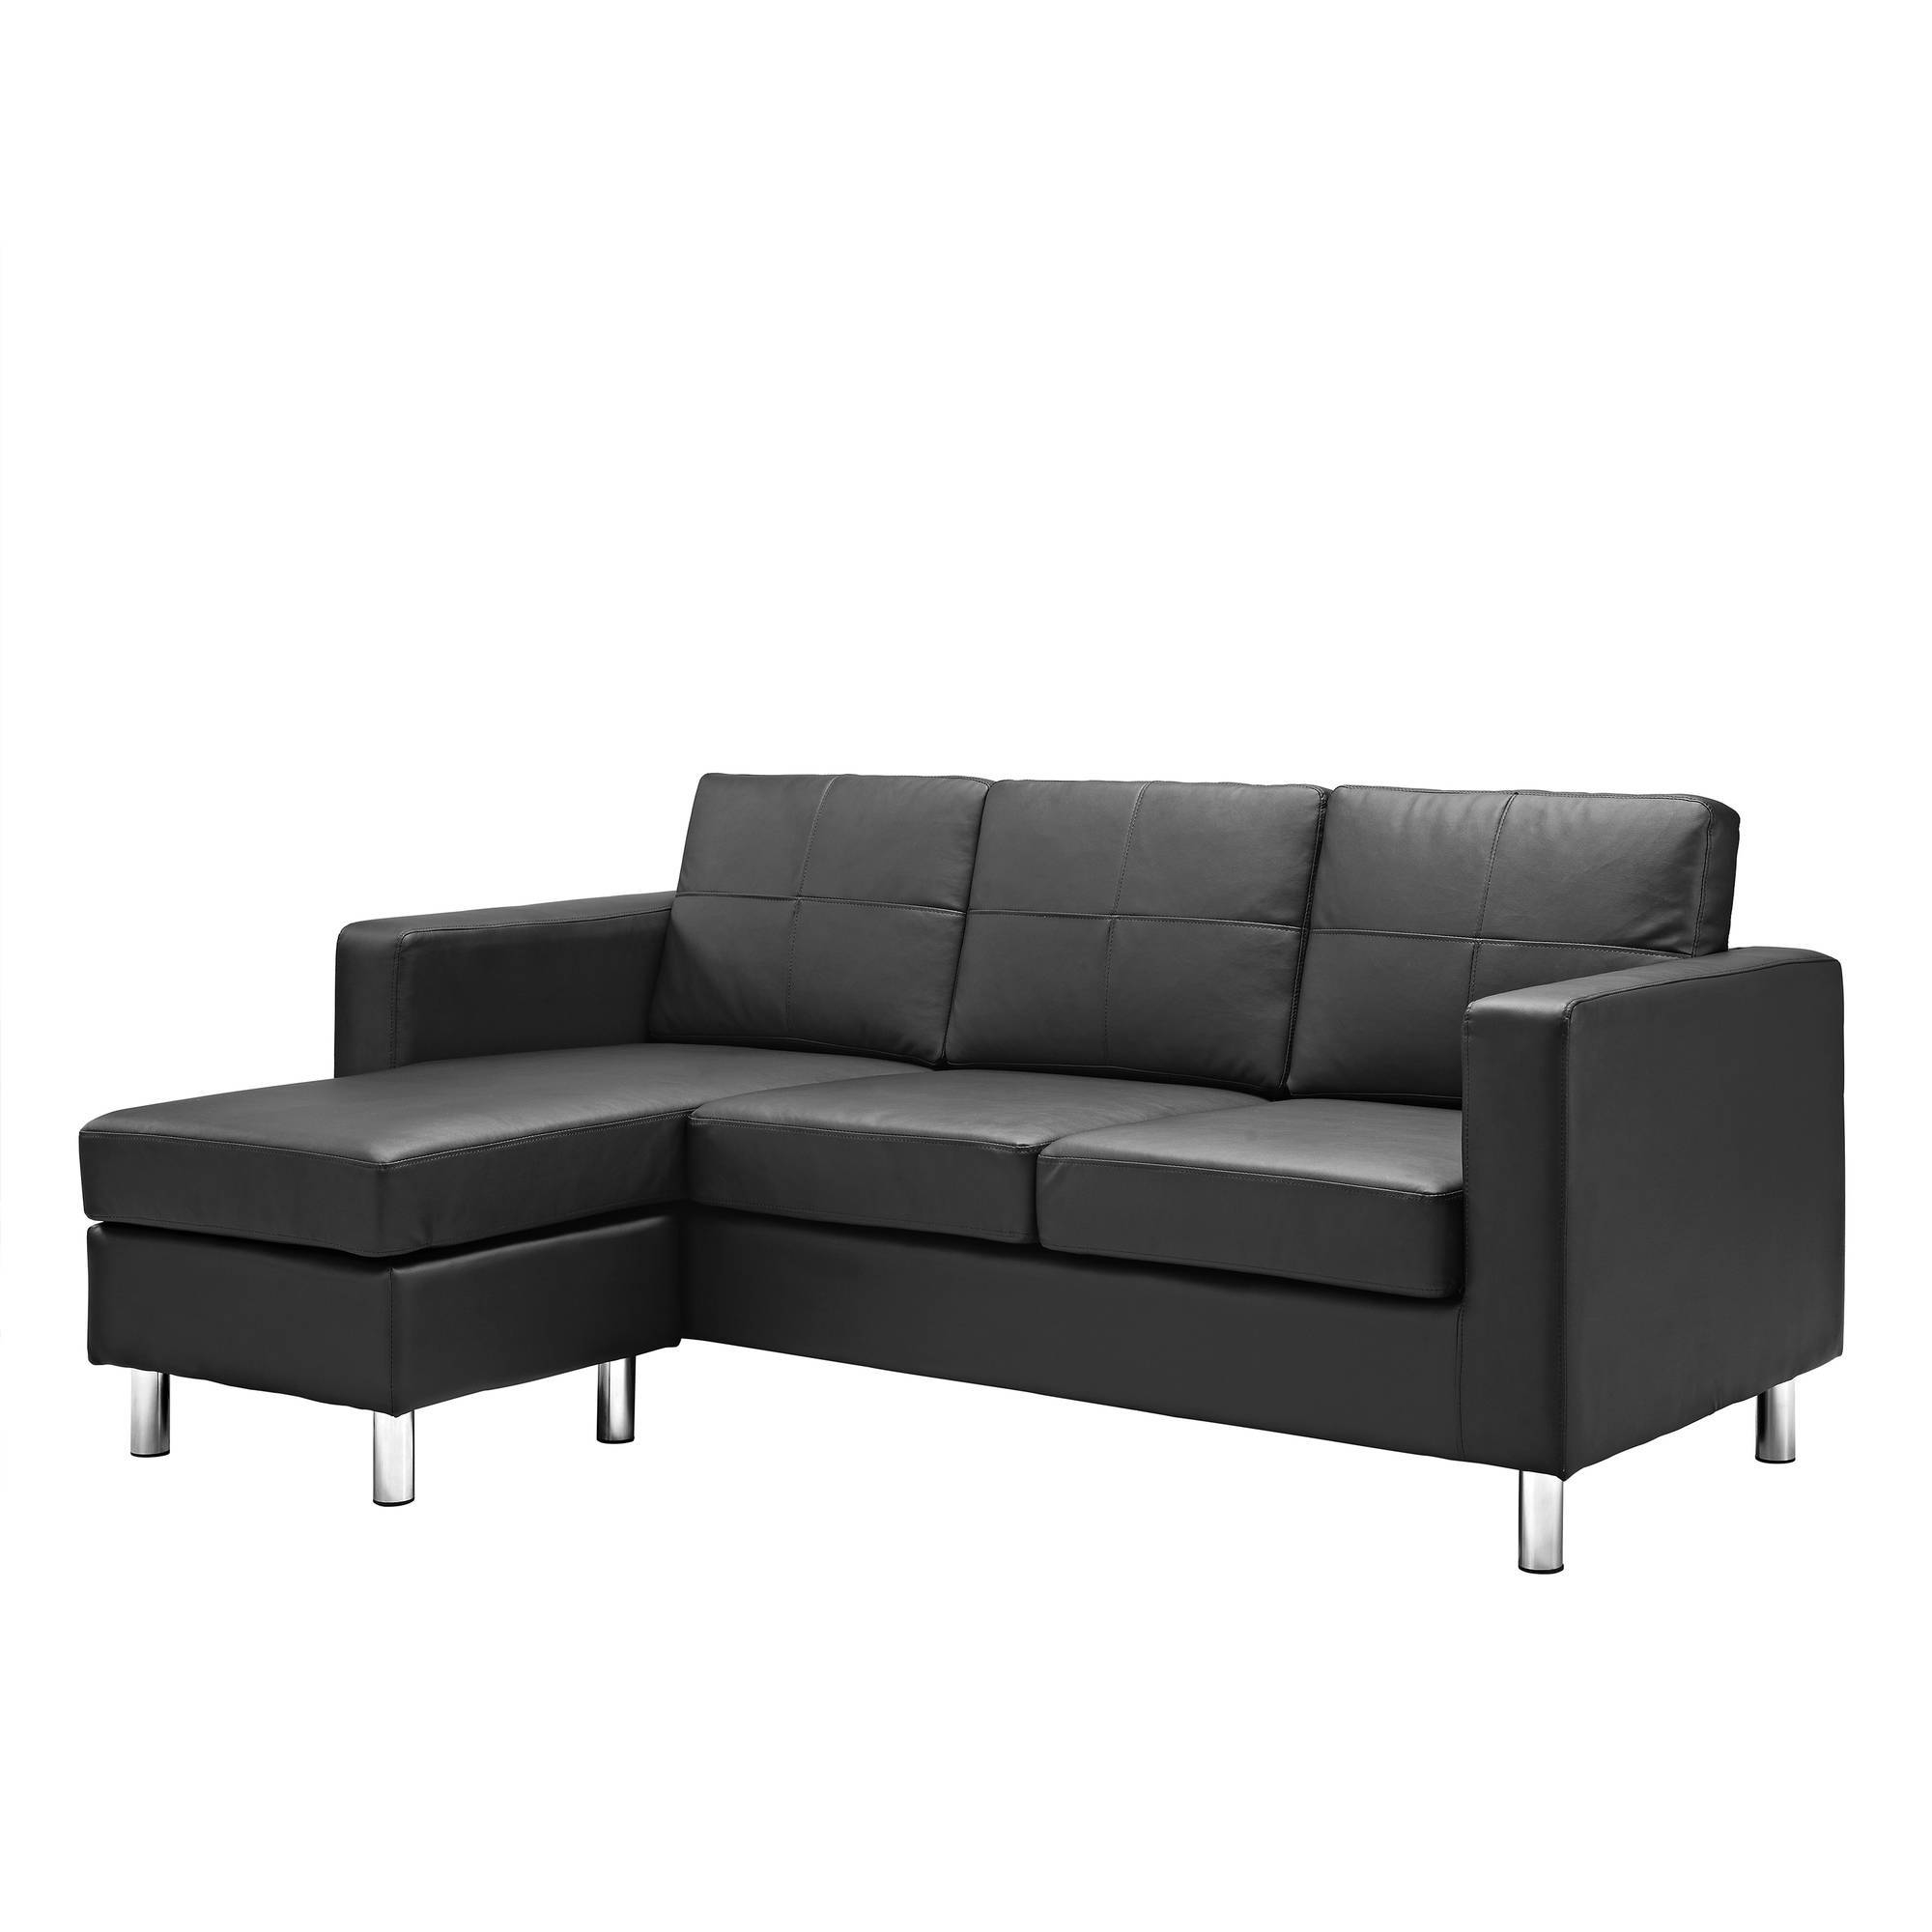 Dorel Living Small Spaces Configurable Sectional Sofa, Multiple for Mini Sectional Sofas (Image 6 of 30)